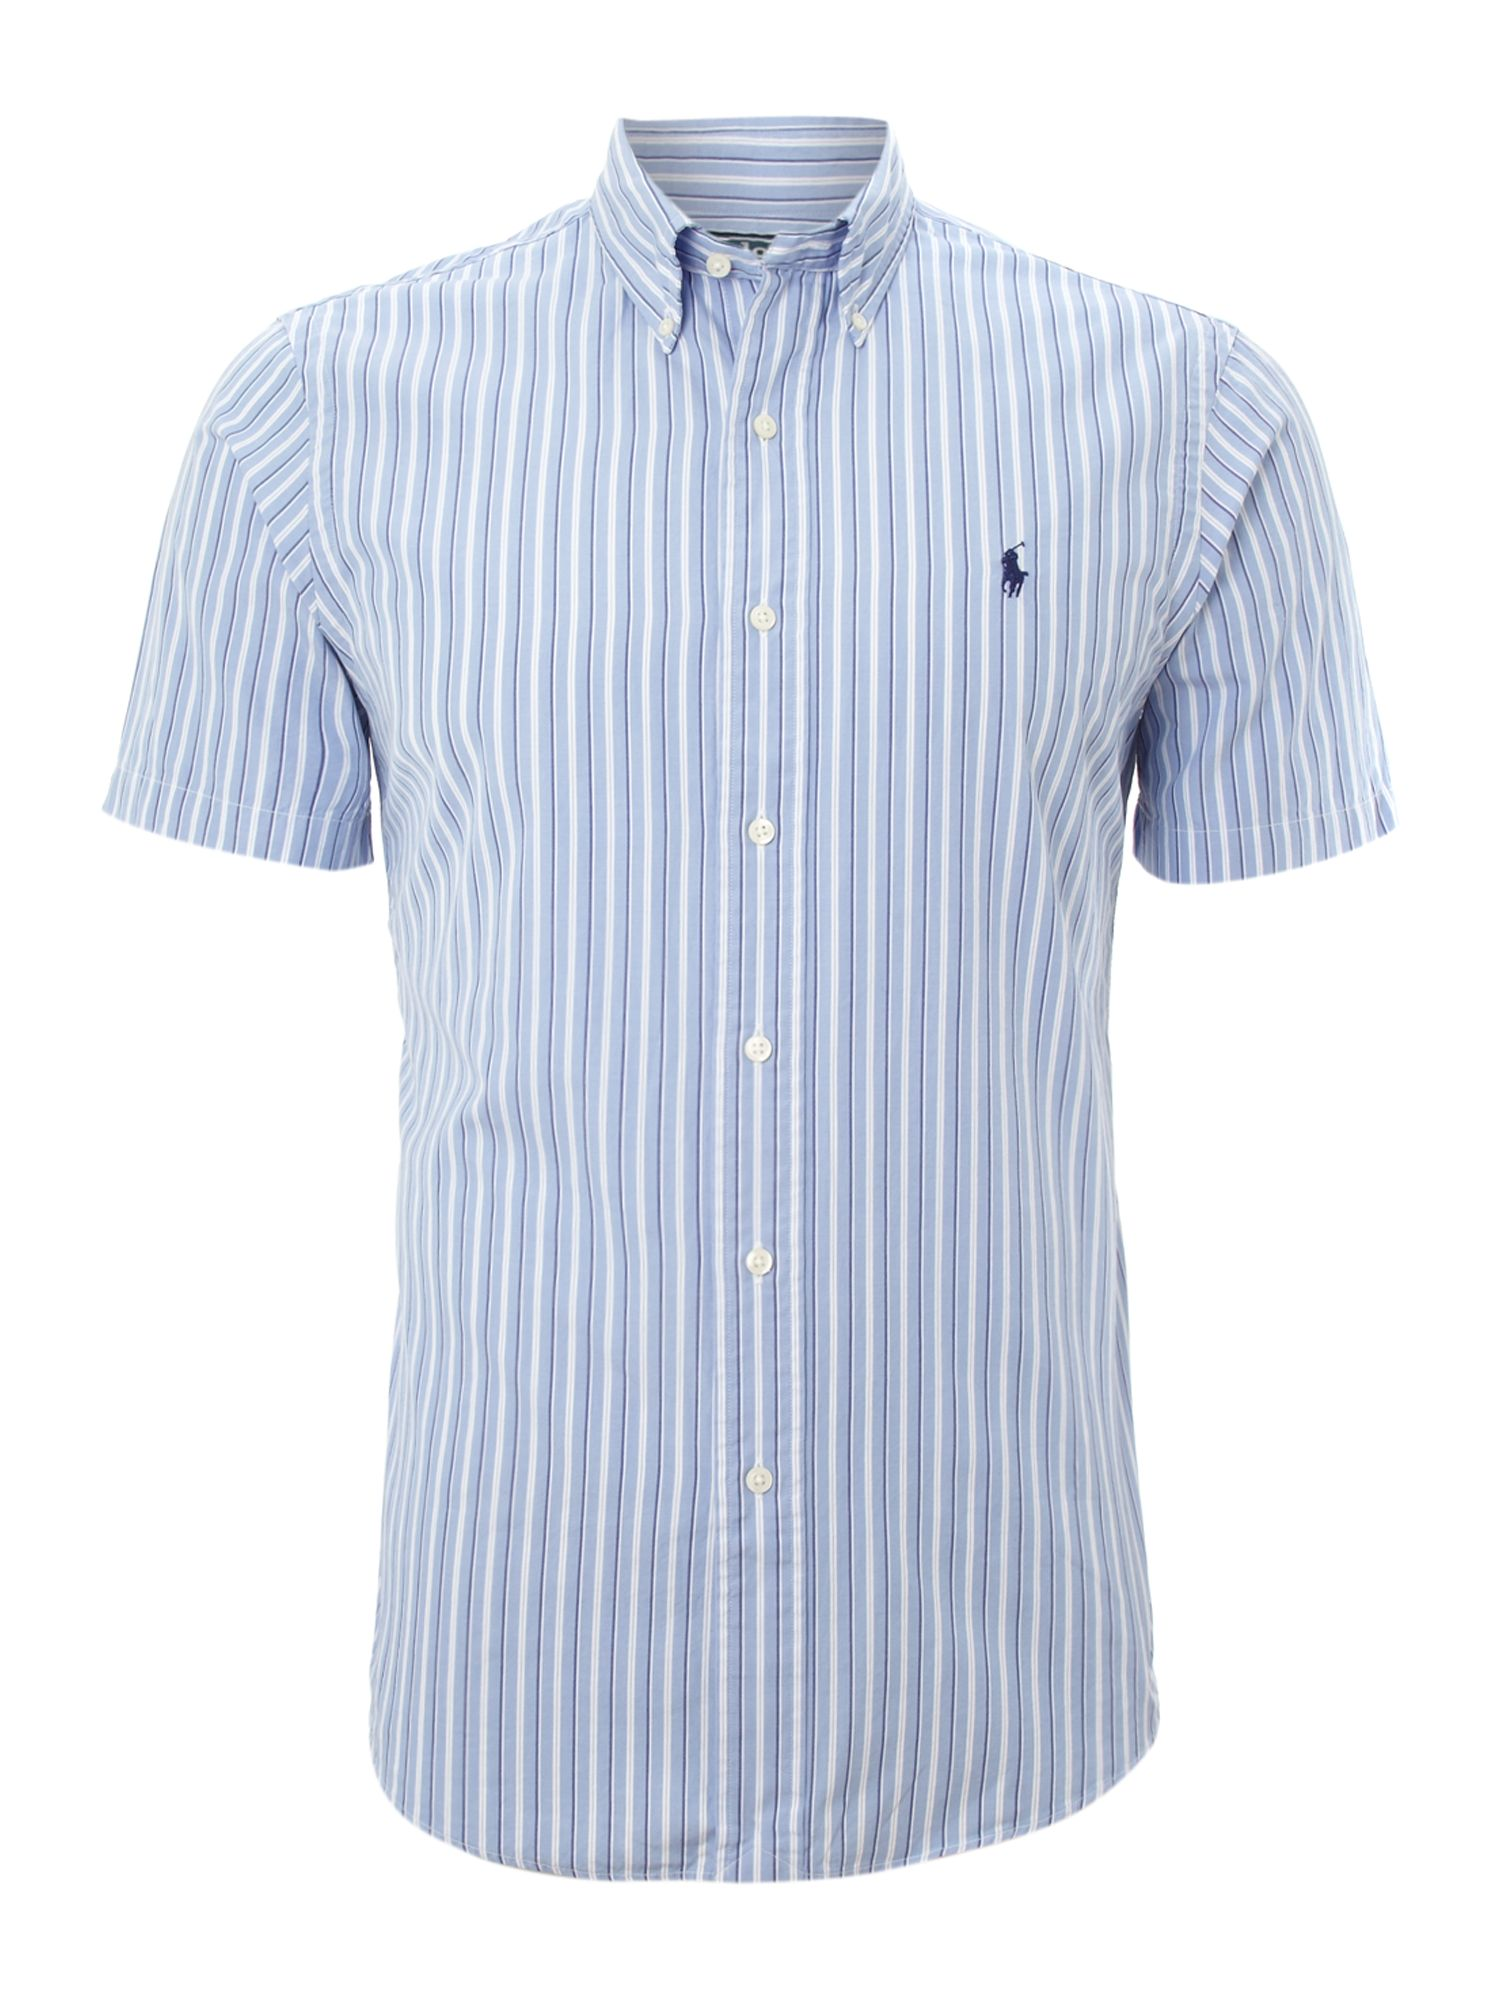 Polo ralph lauren short sleeved striped shirt in blue for for Blue striped shirt mens